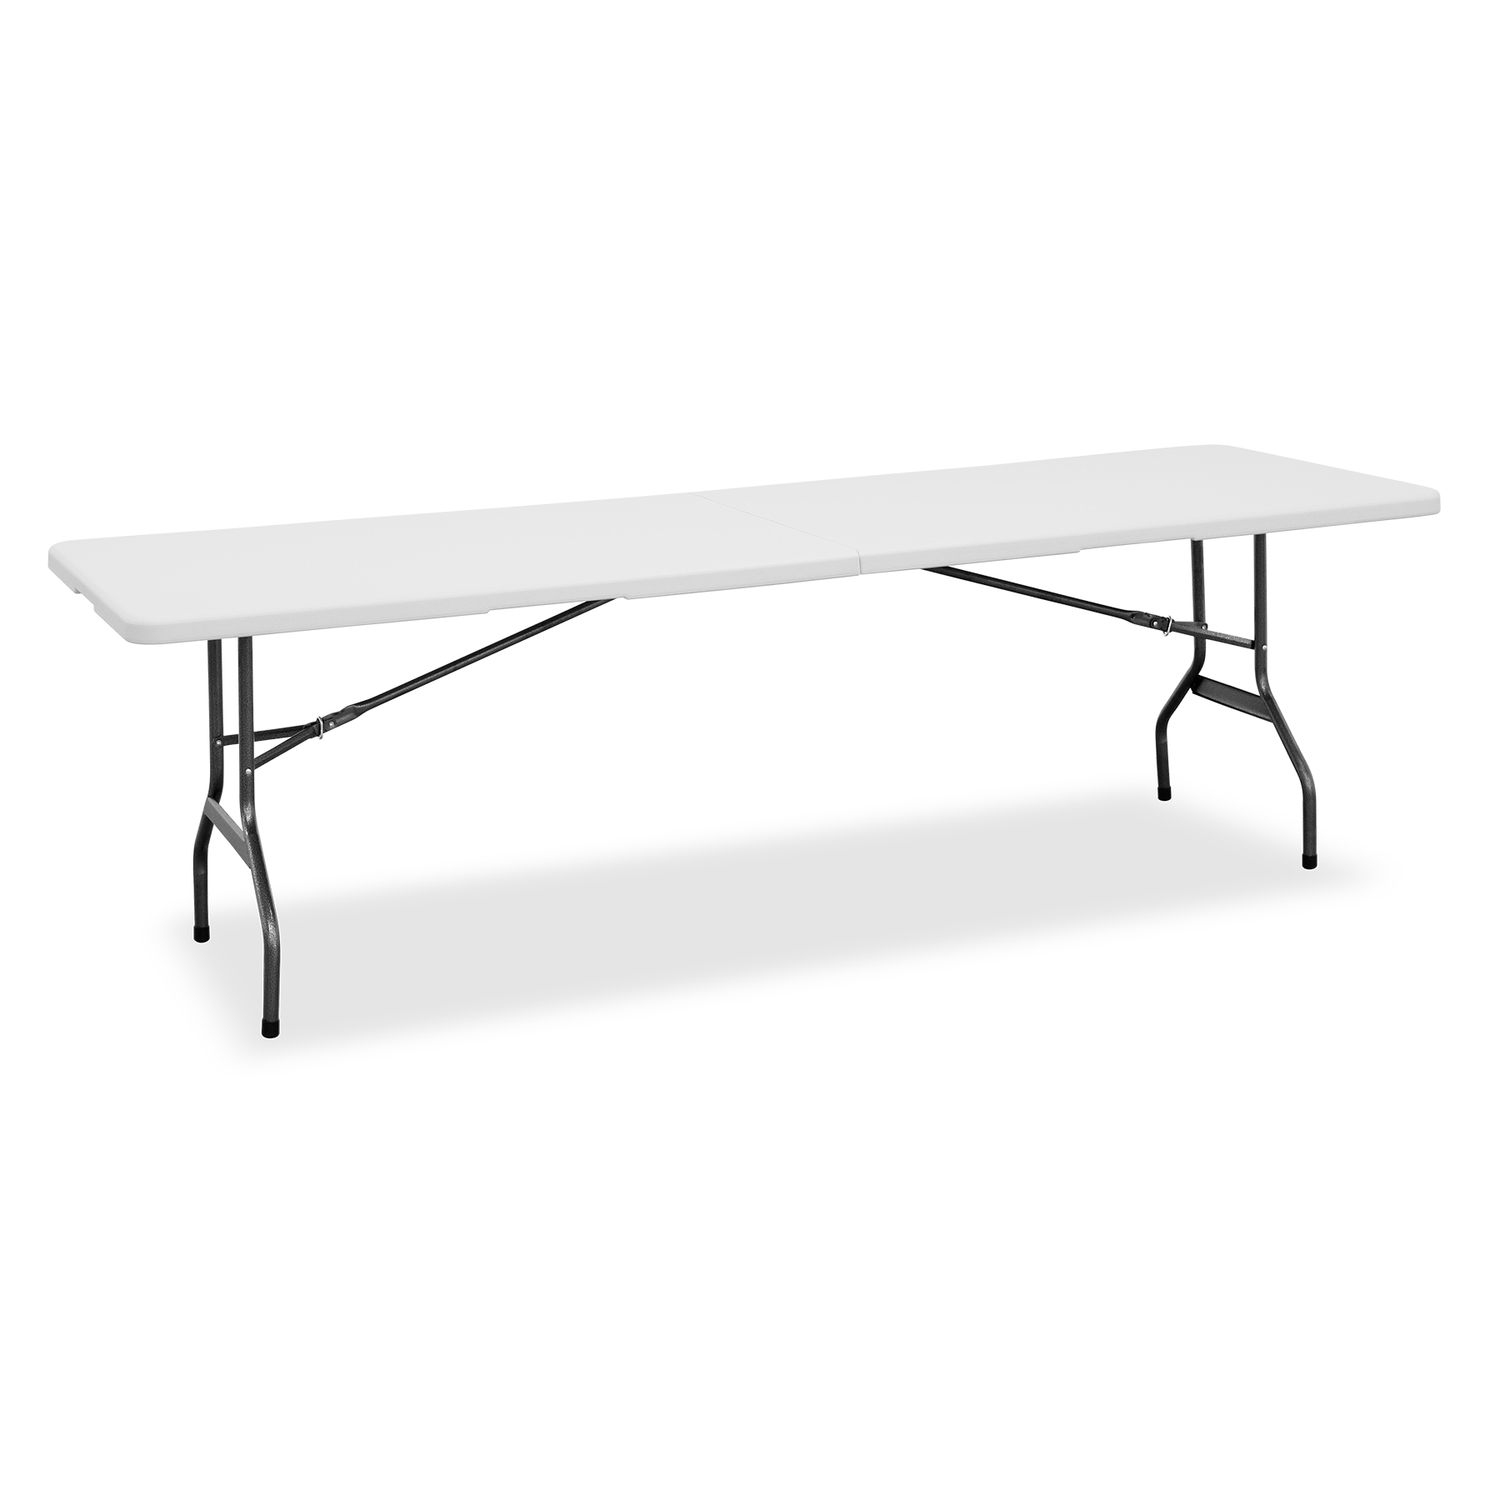 Living Accents  29-1/4 in. H x 30 in. W x 96 in. L Folding Table  Rectangular